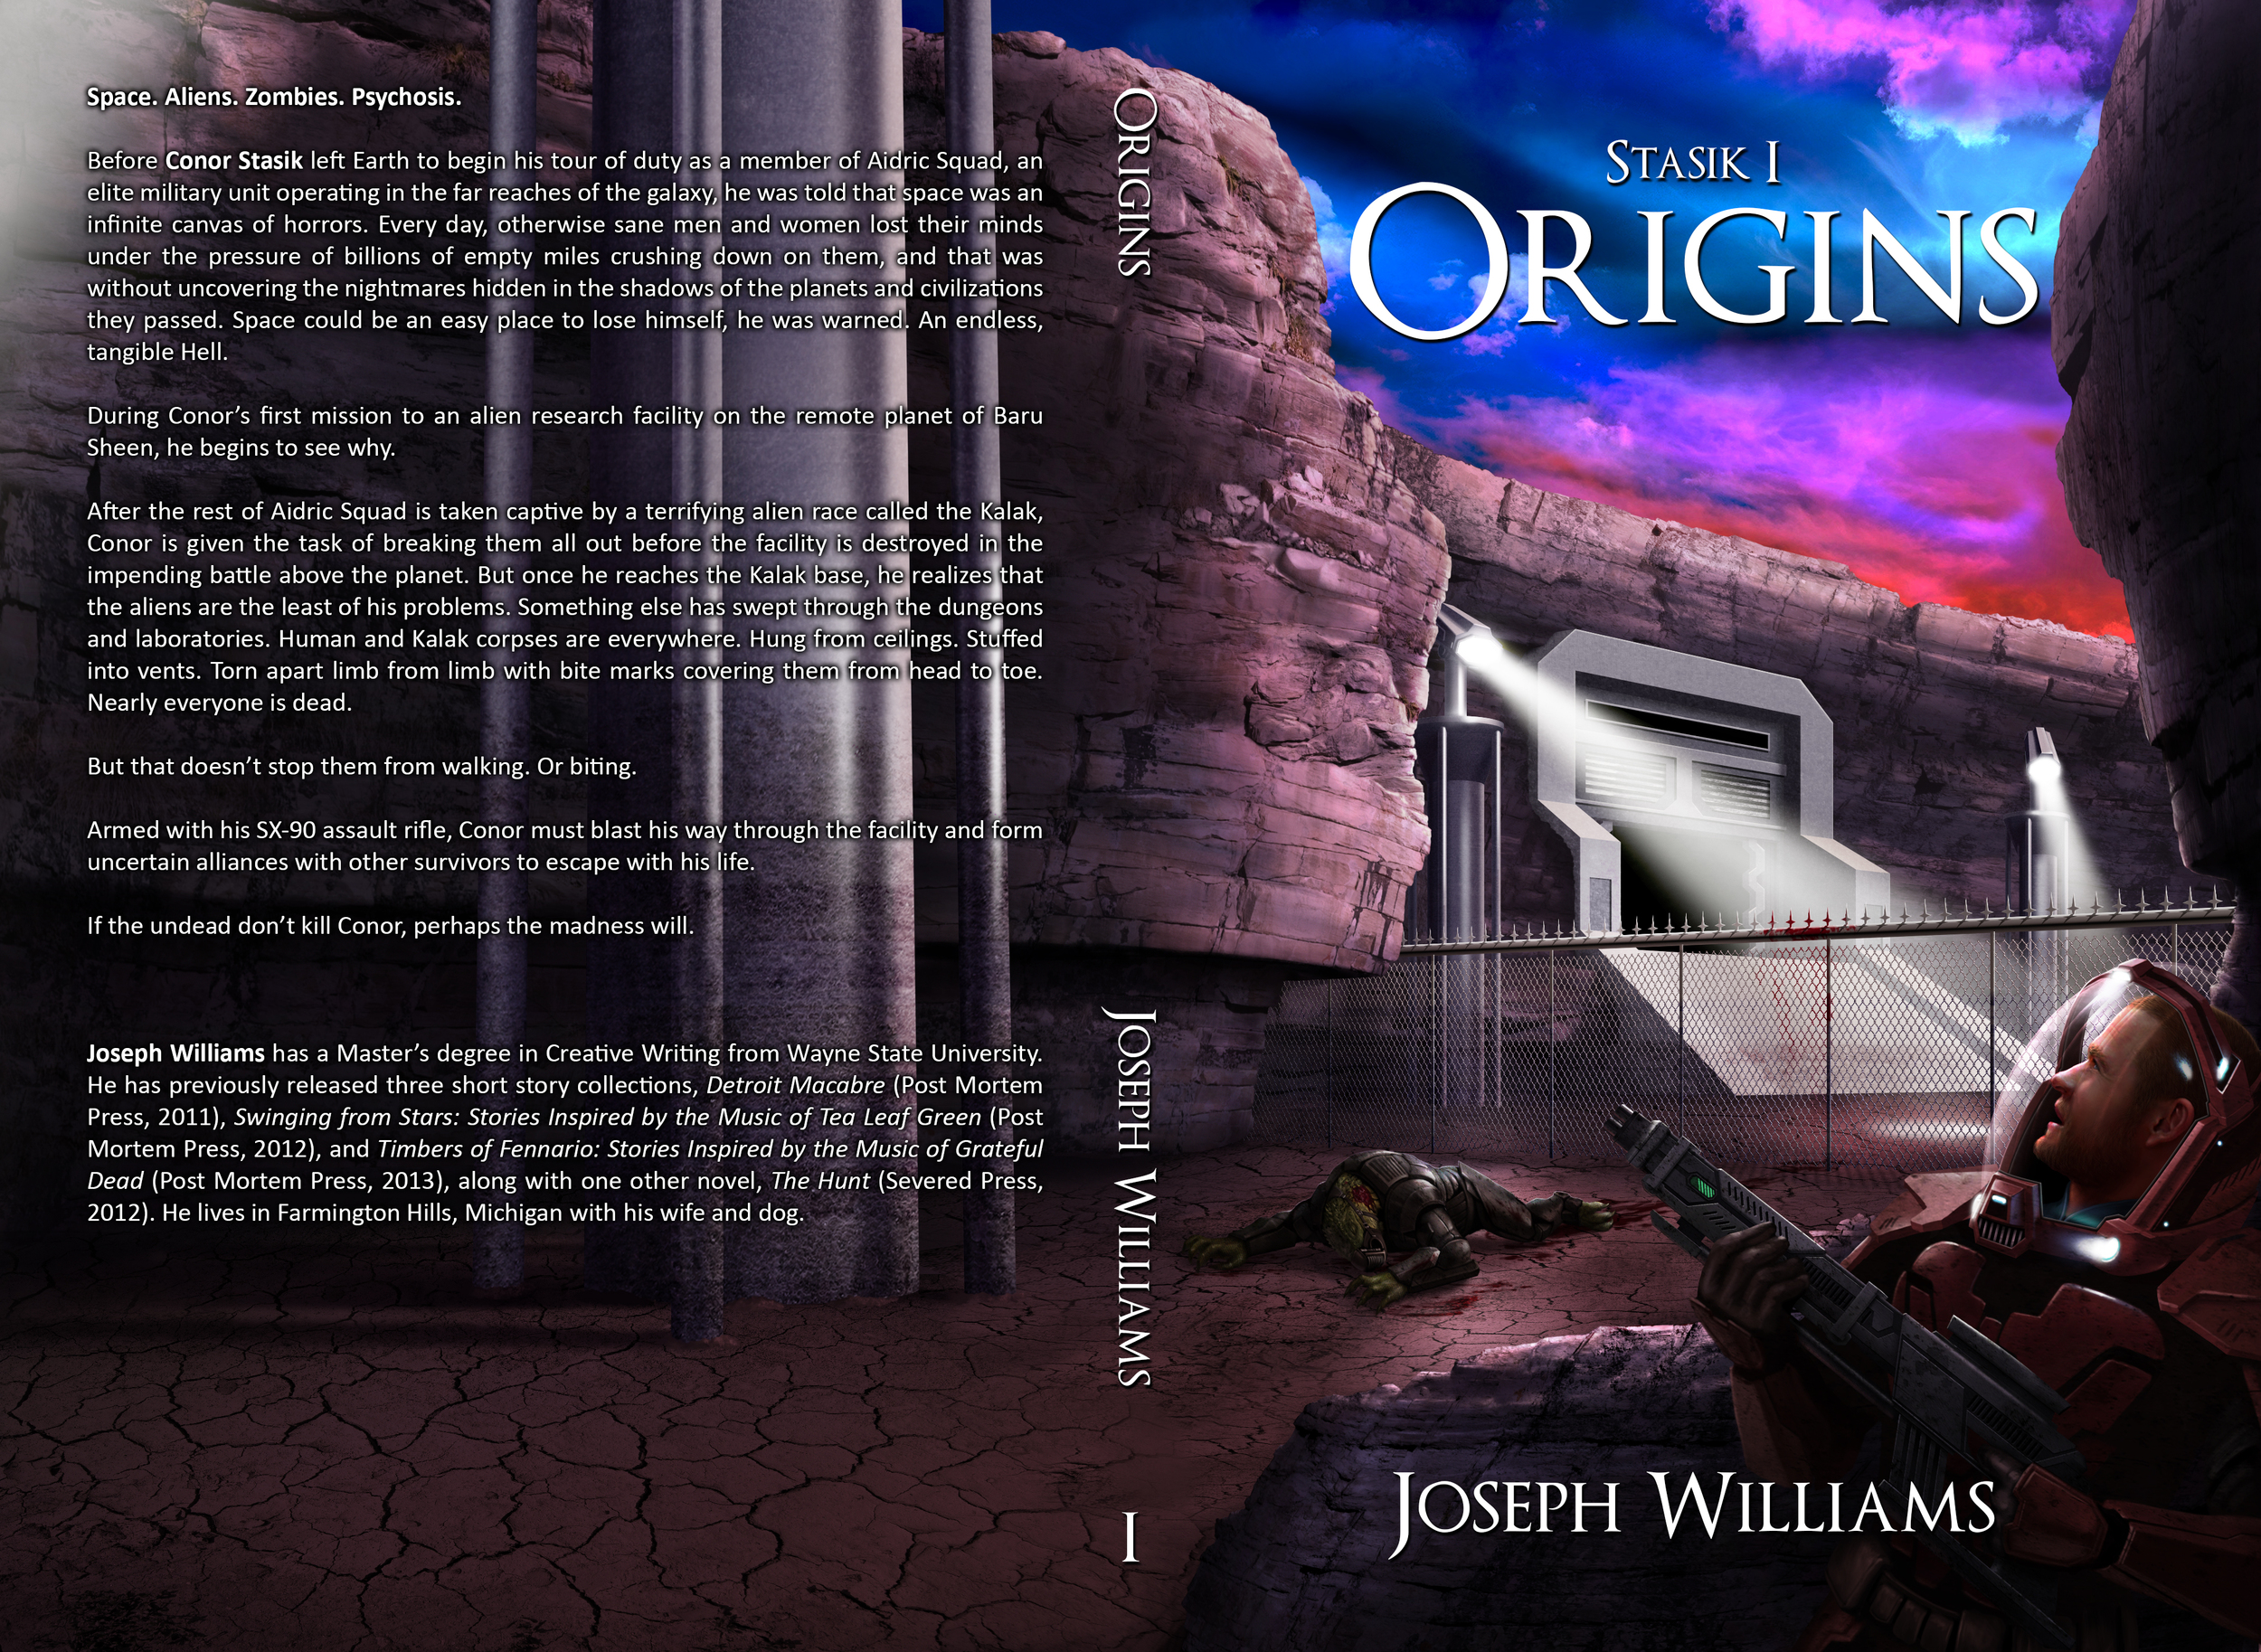 'Stasik I: Origins' Book Cover